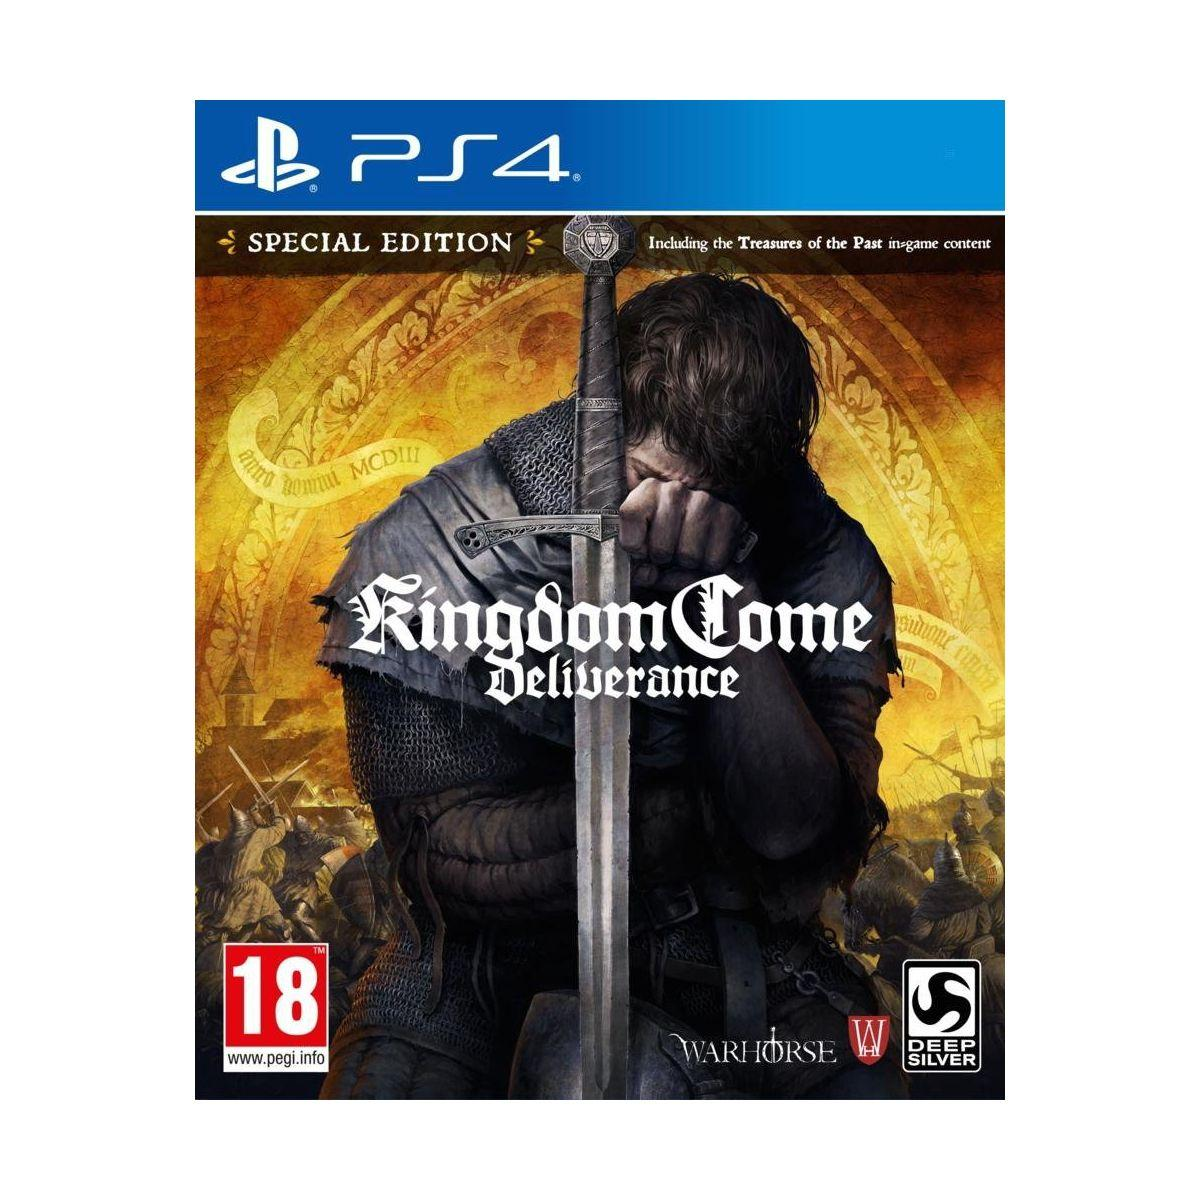 Jeu ps4 koch media kingdom come deliverance edition limit�e - 2% de remise imm�diate avec le code : priv2 (photo)